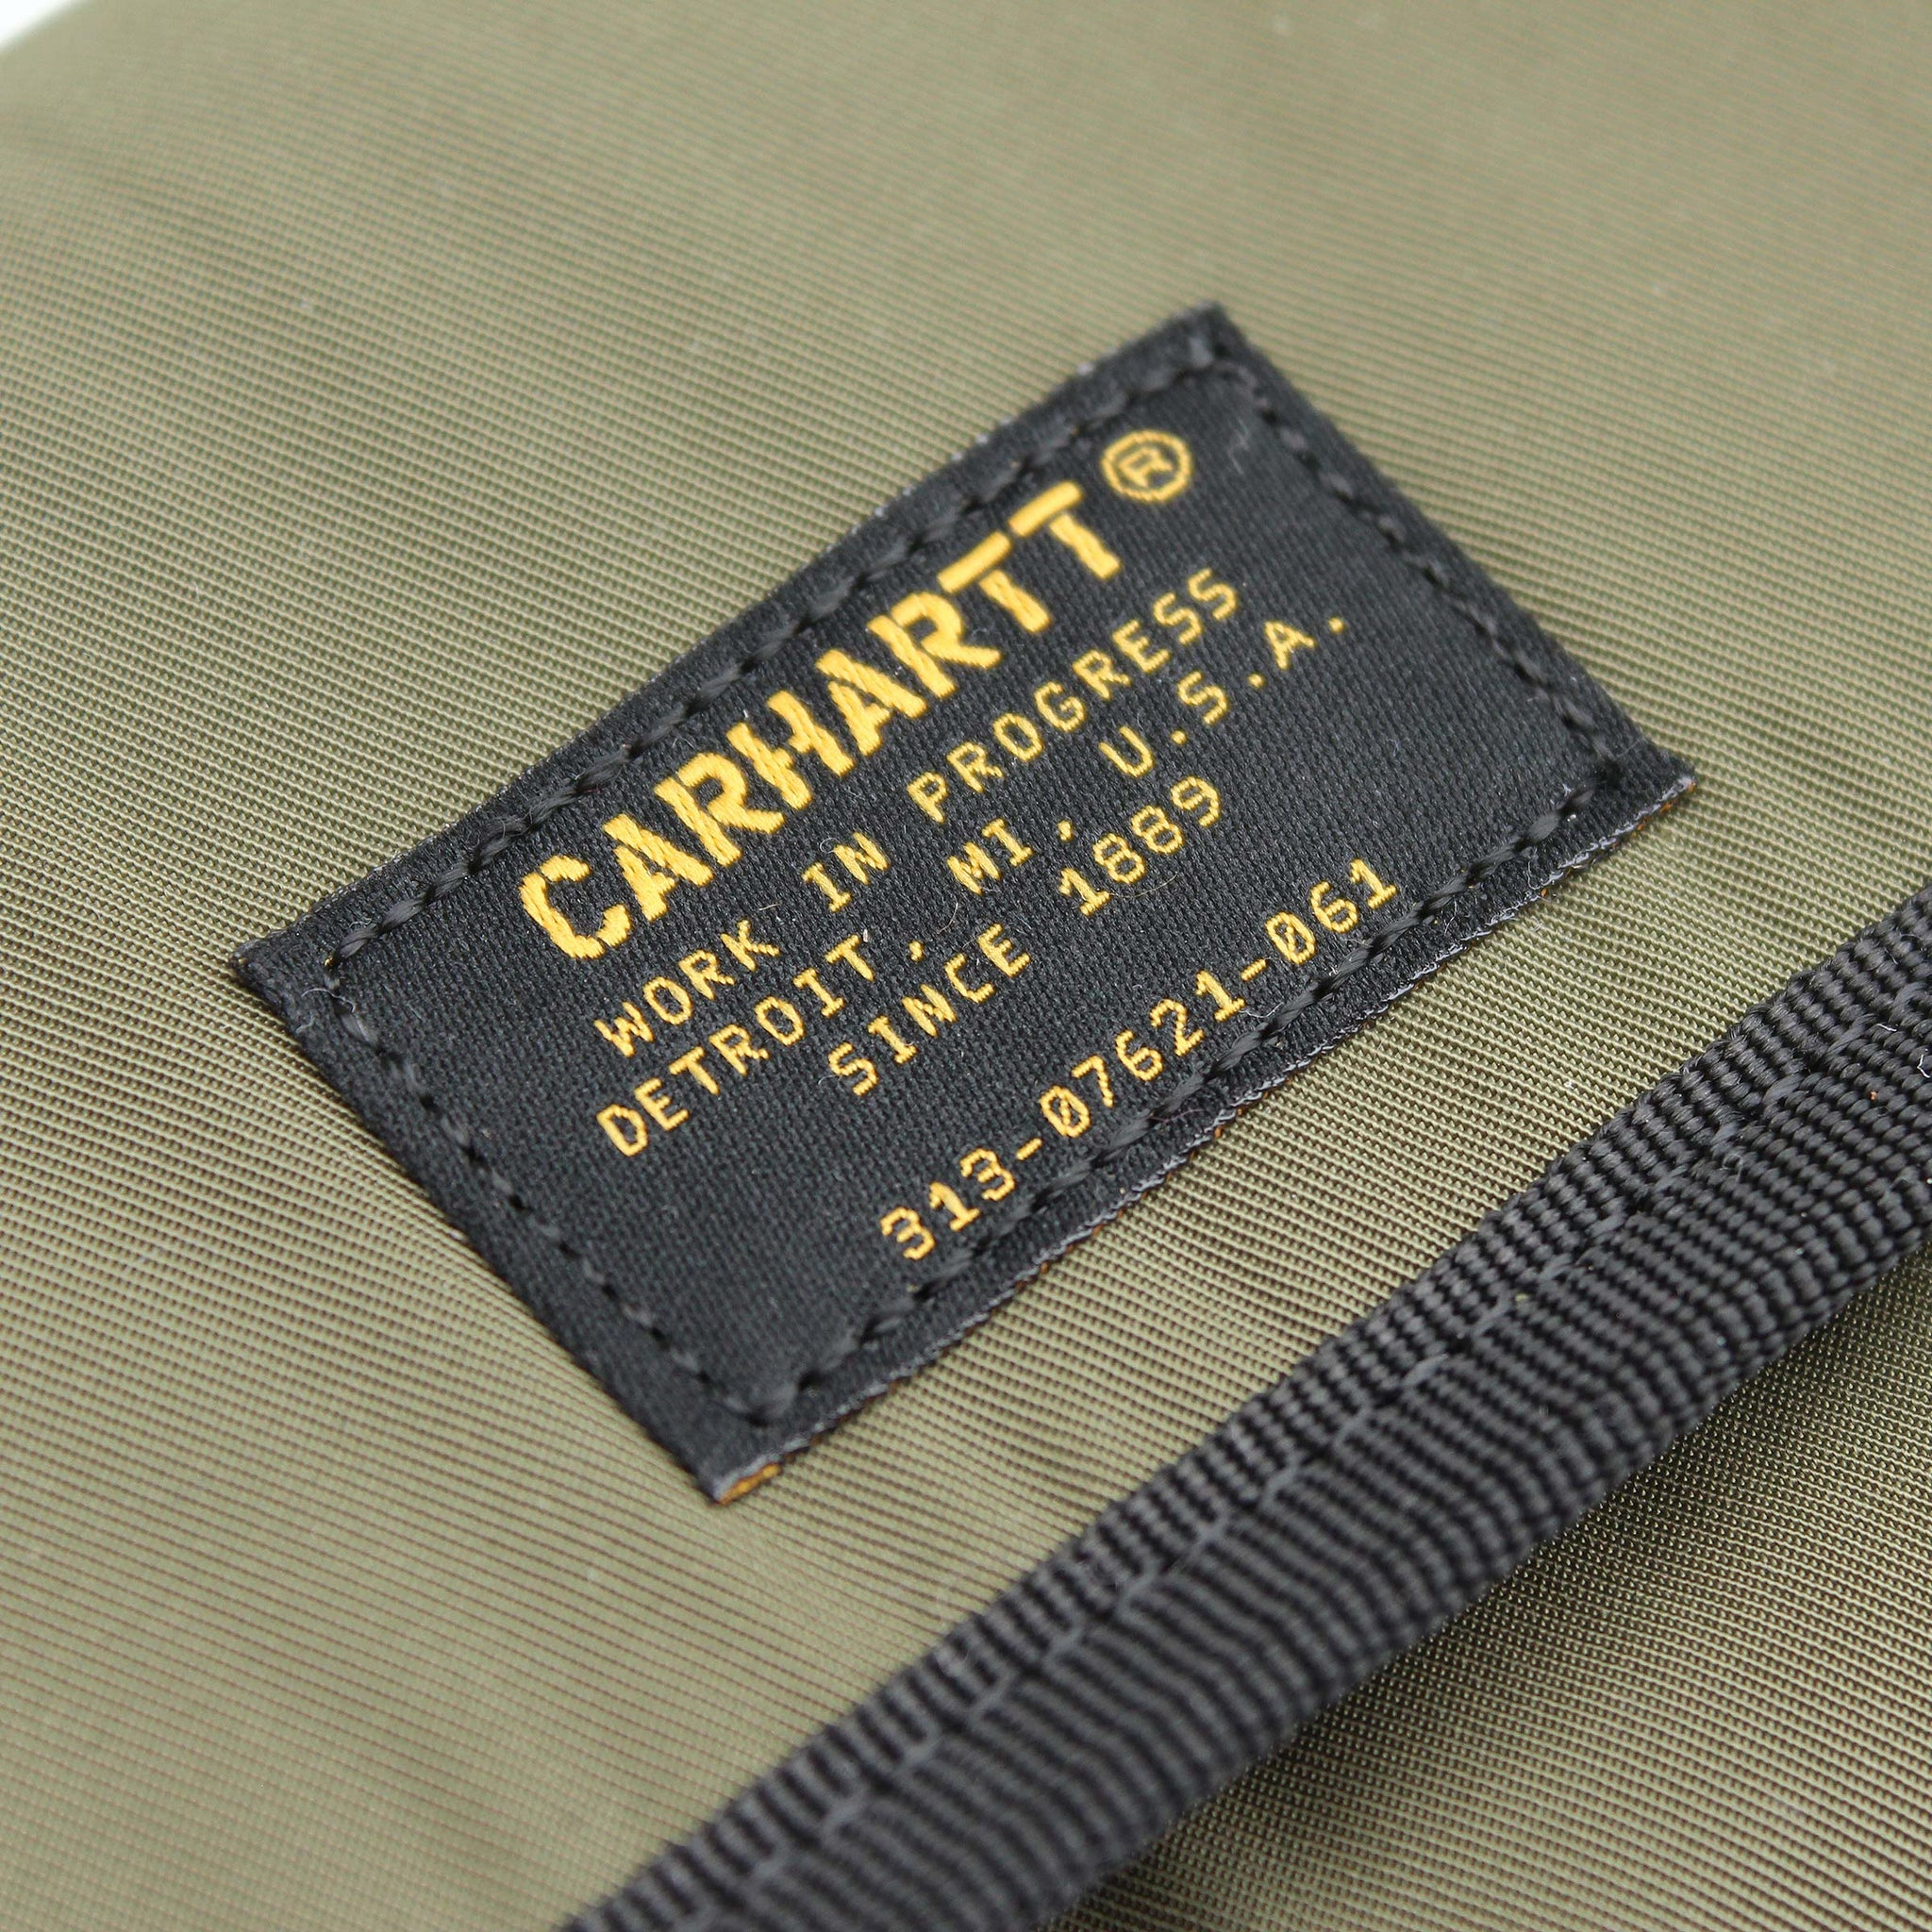 Carhartt WIP Military Travel Wallet